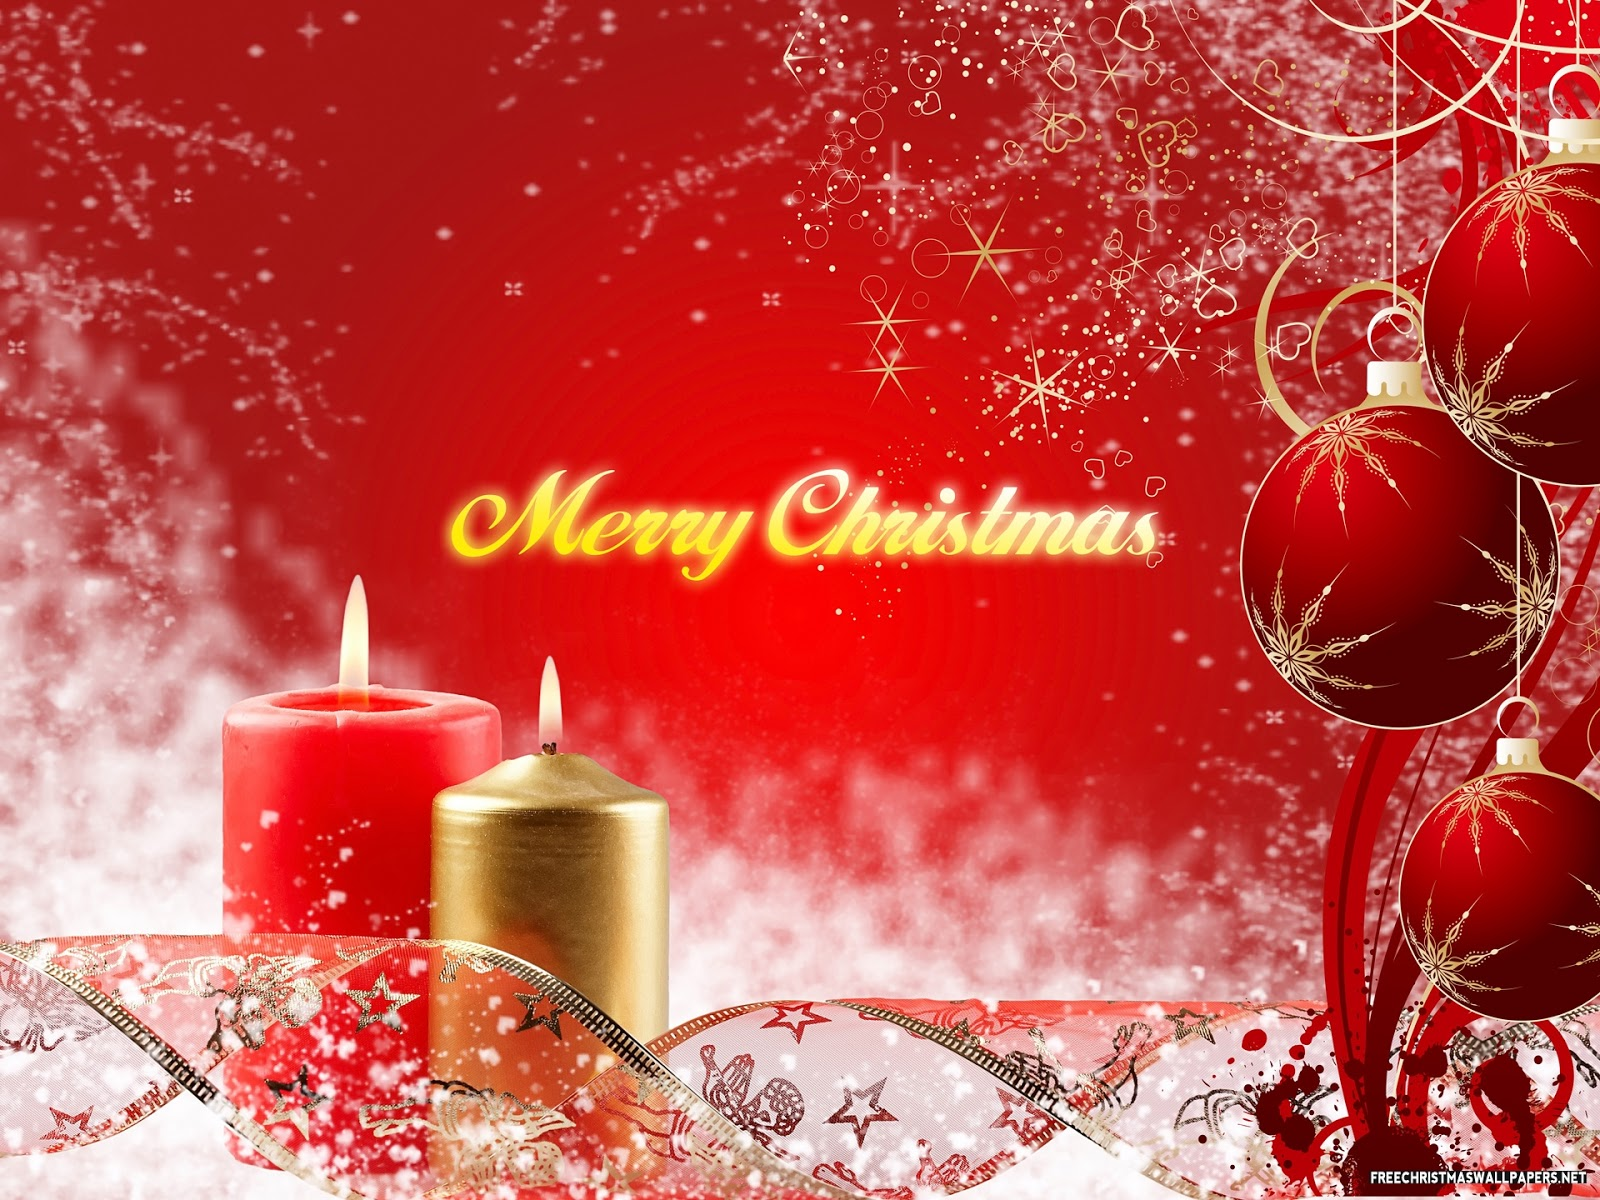 merry christmas 2013 wallpaper merry christmas 2013 wallpaper merry 1600x1200